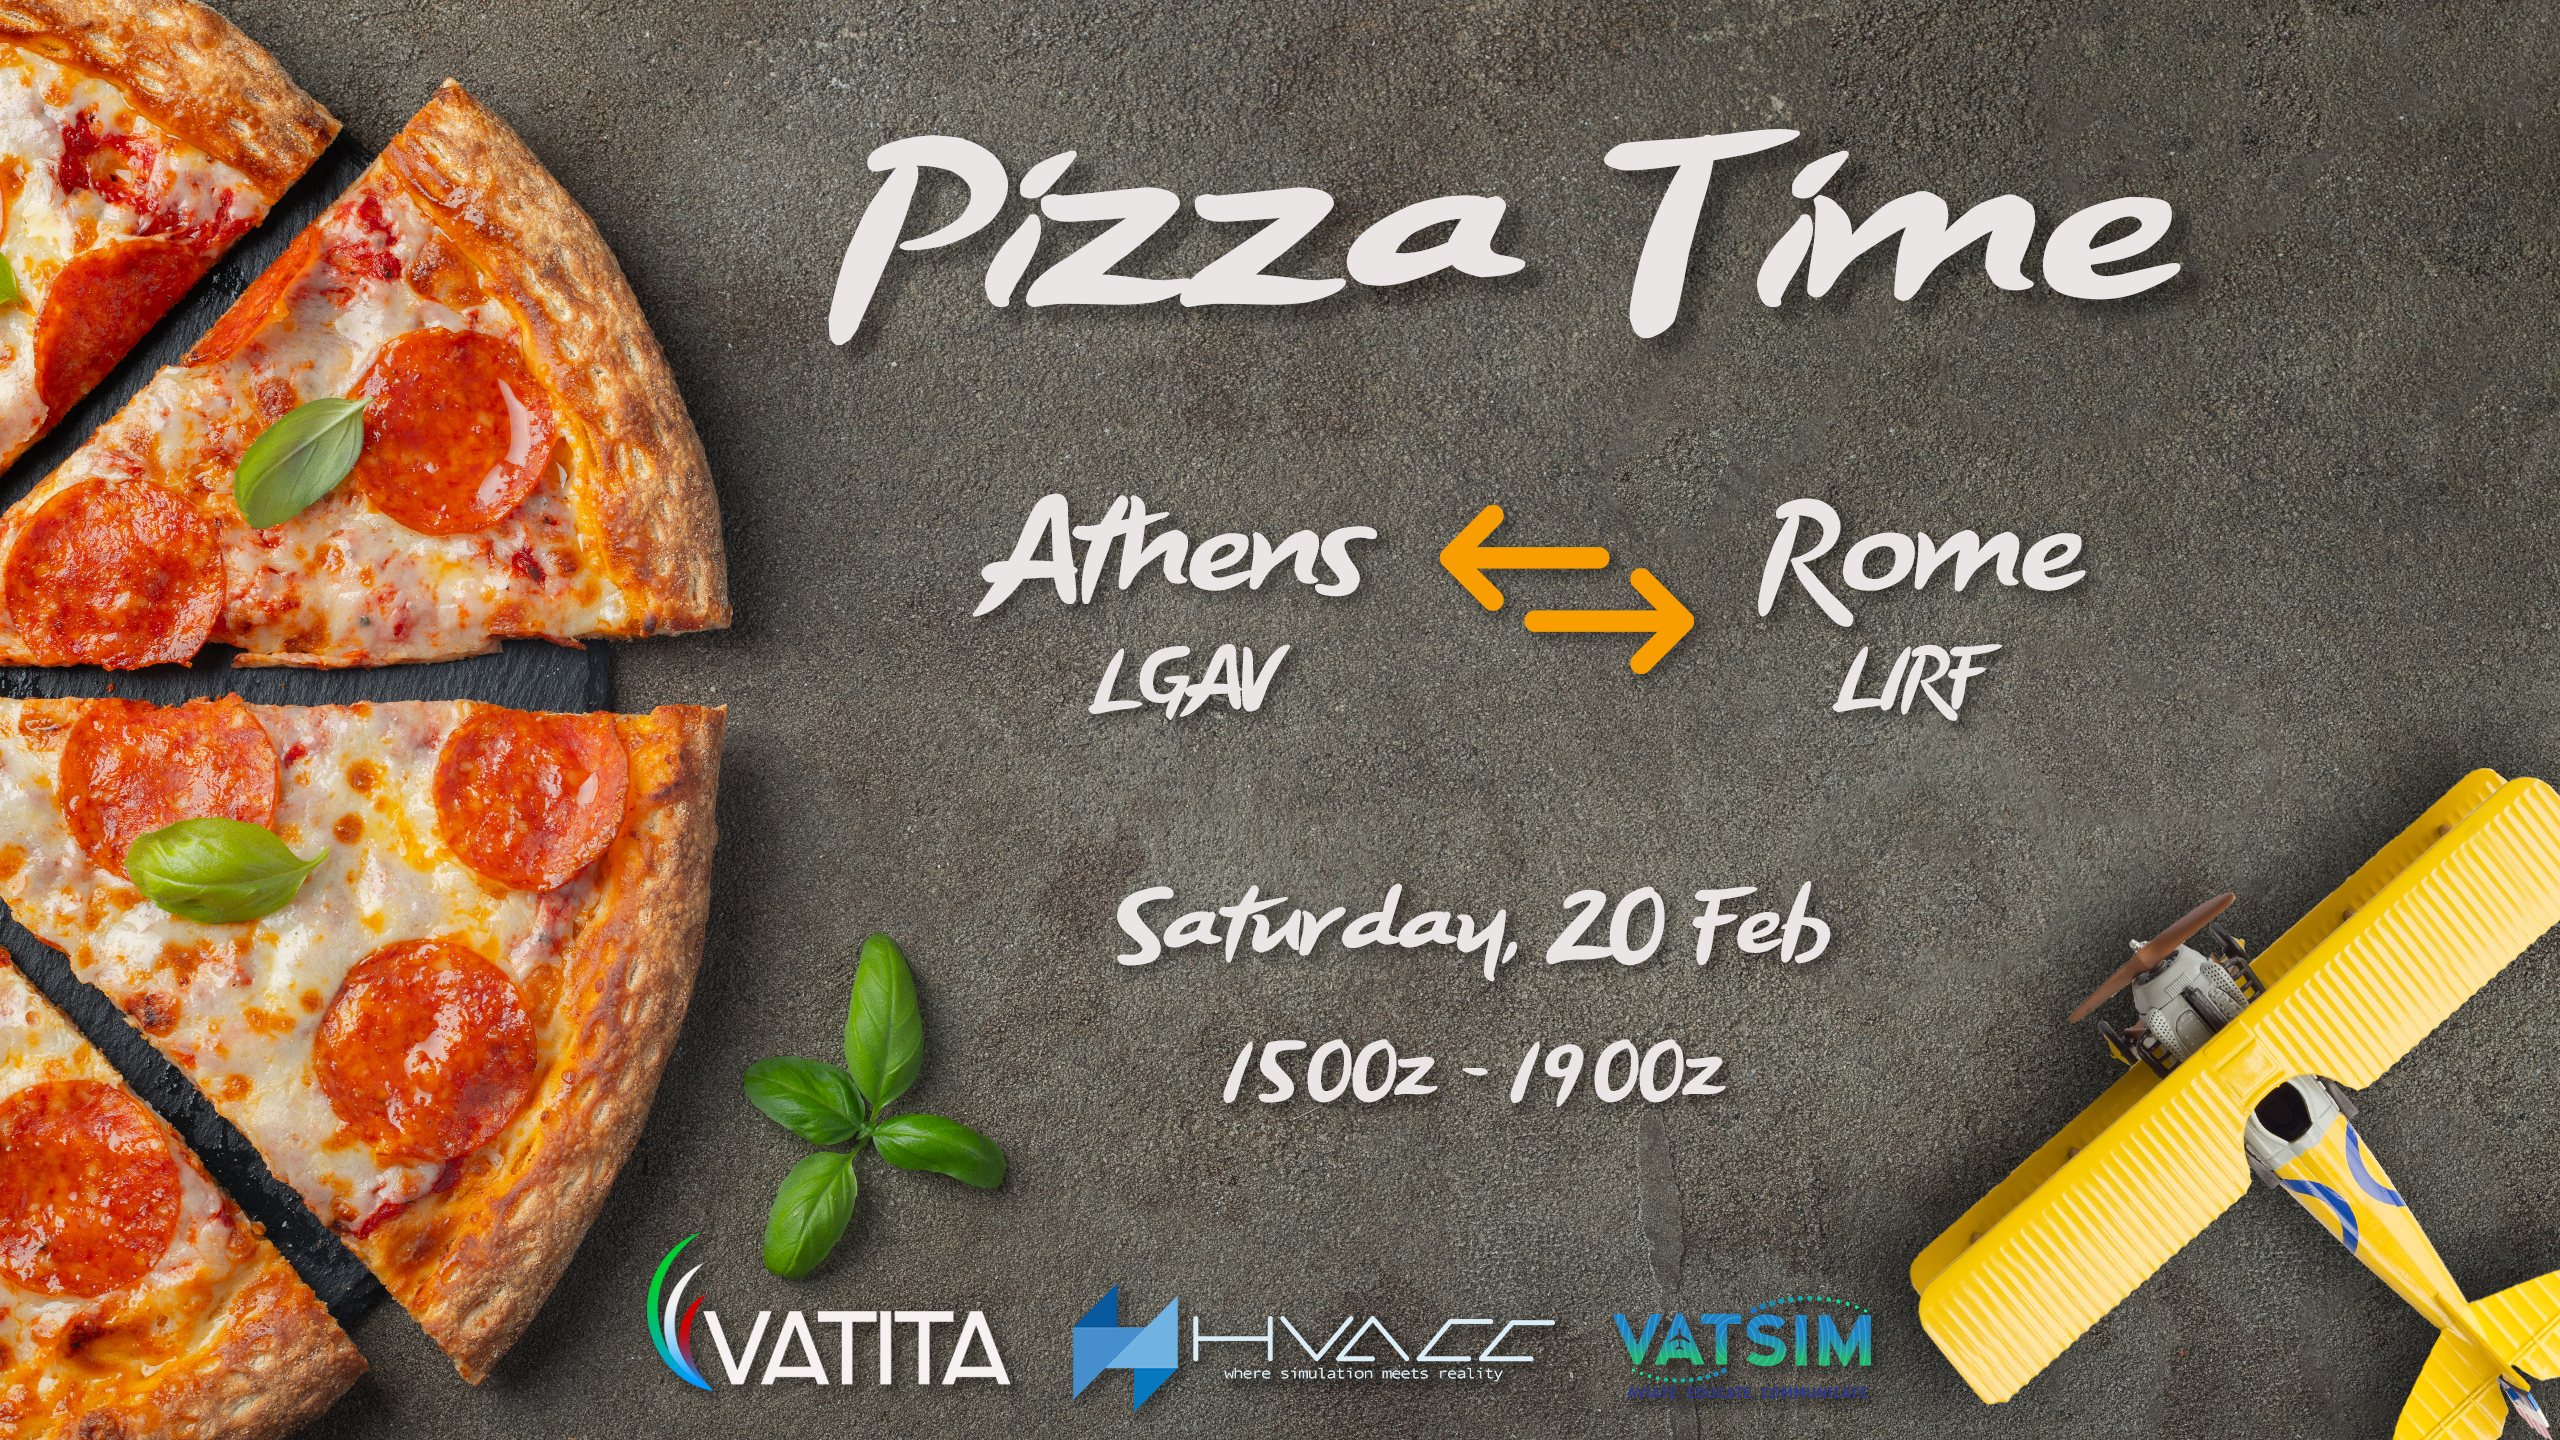 Pizza Time! Rome-Athens City Link | Saturday 20 Feb| 17:00 - 21:00 local